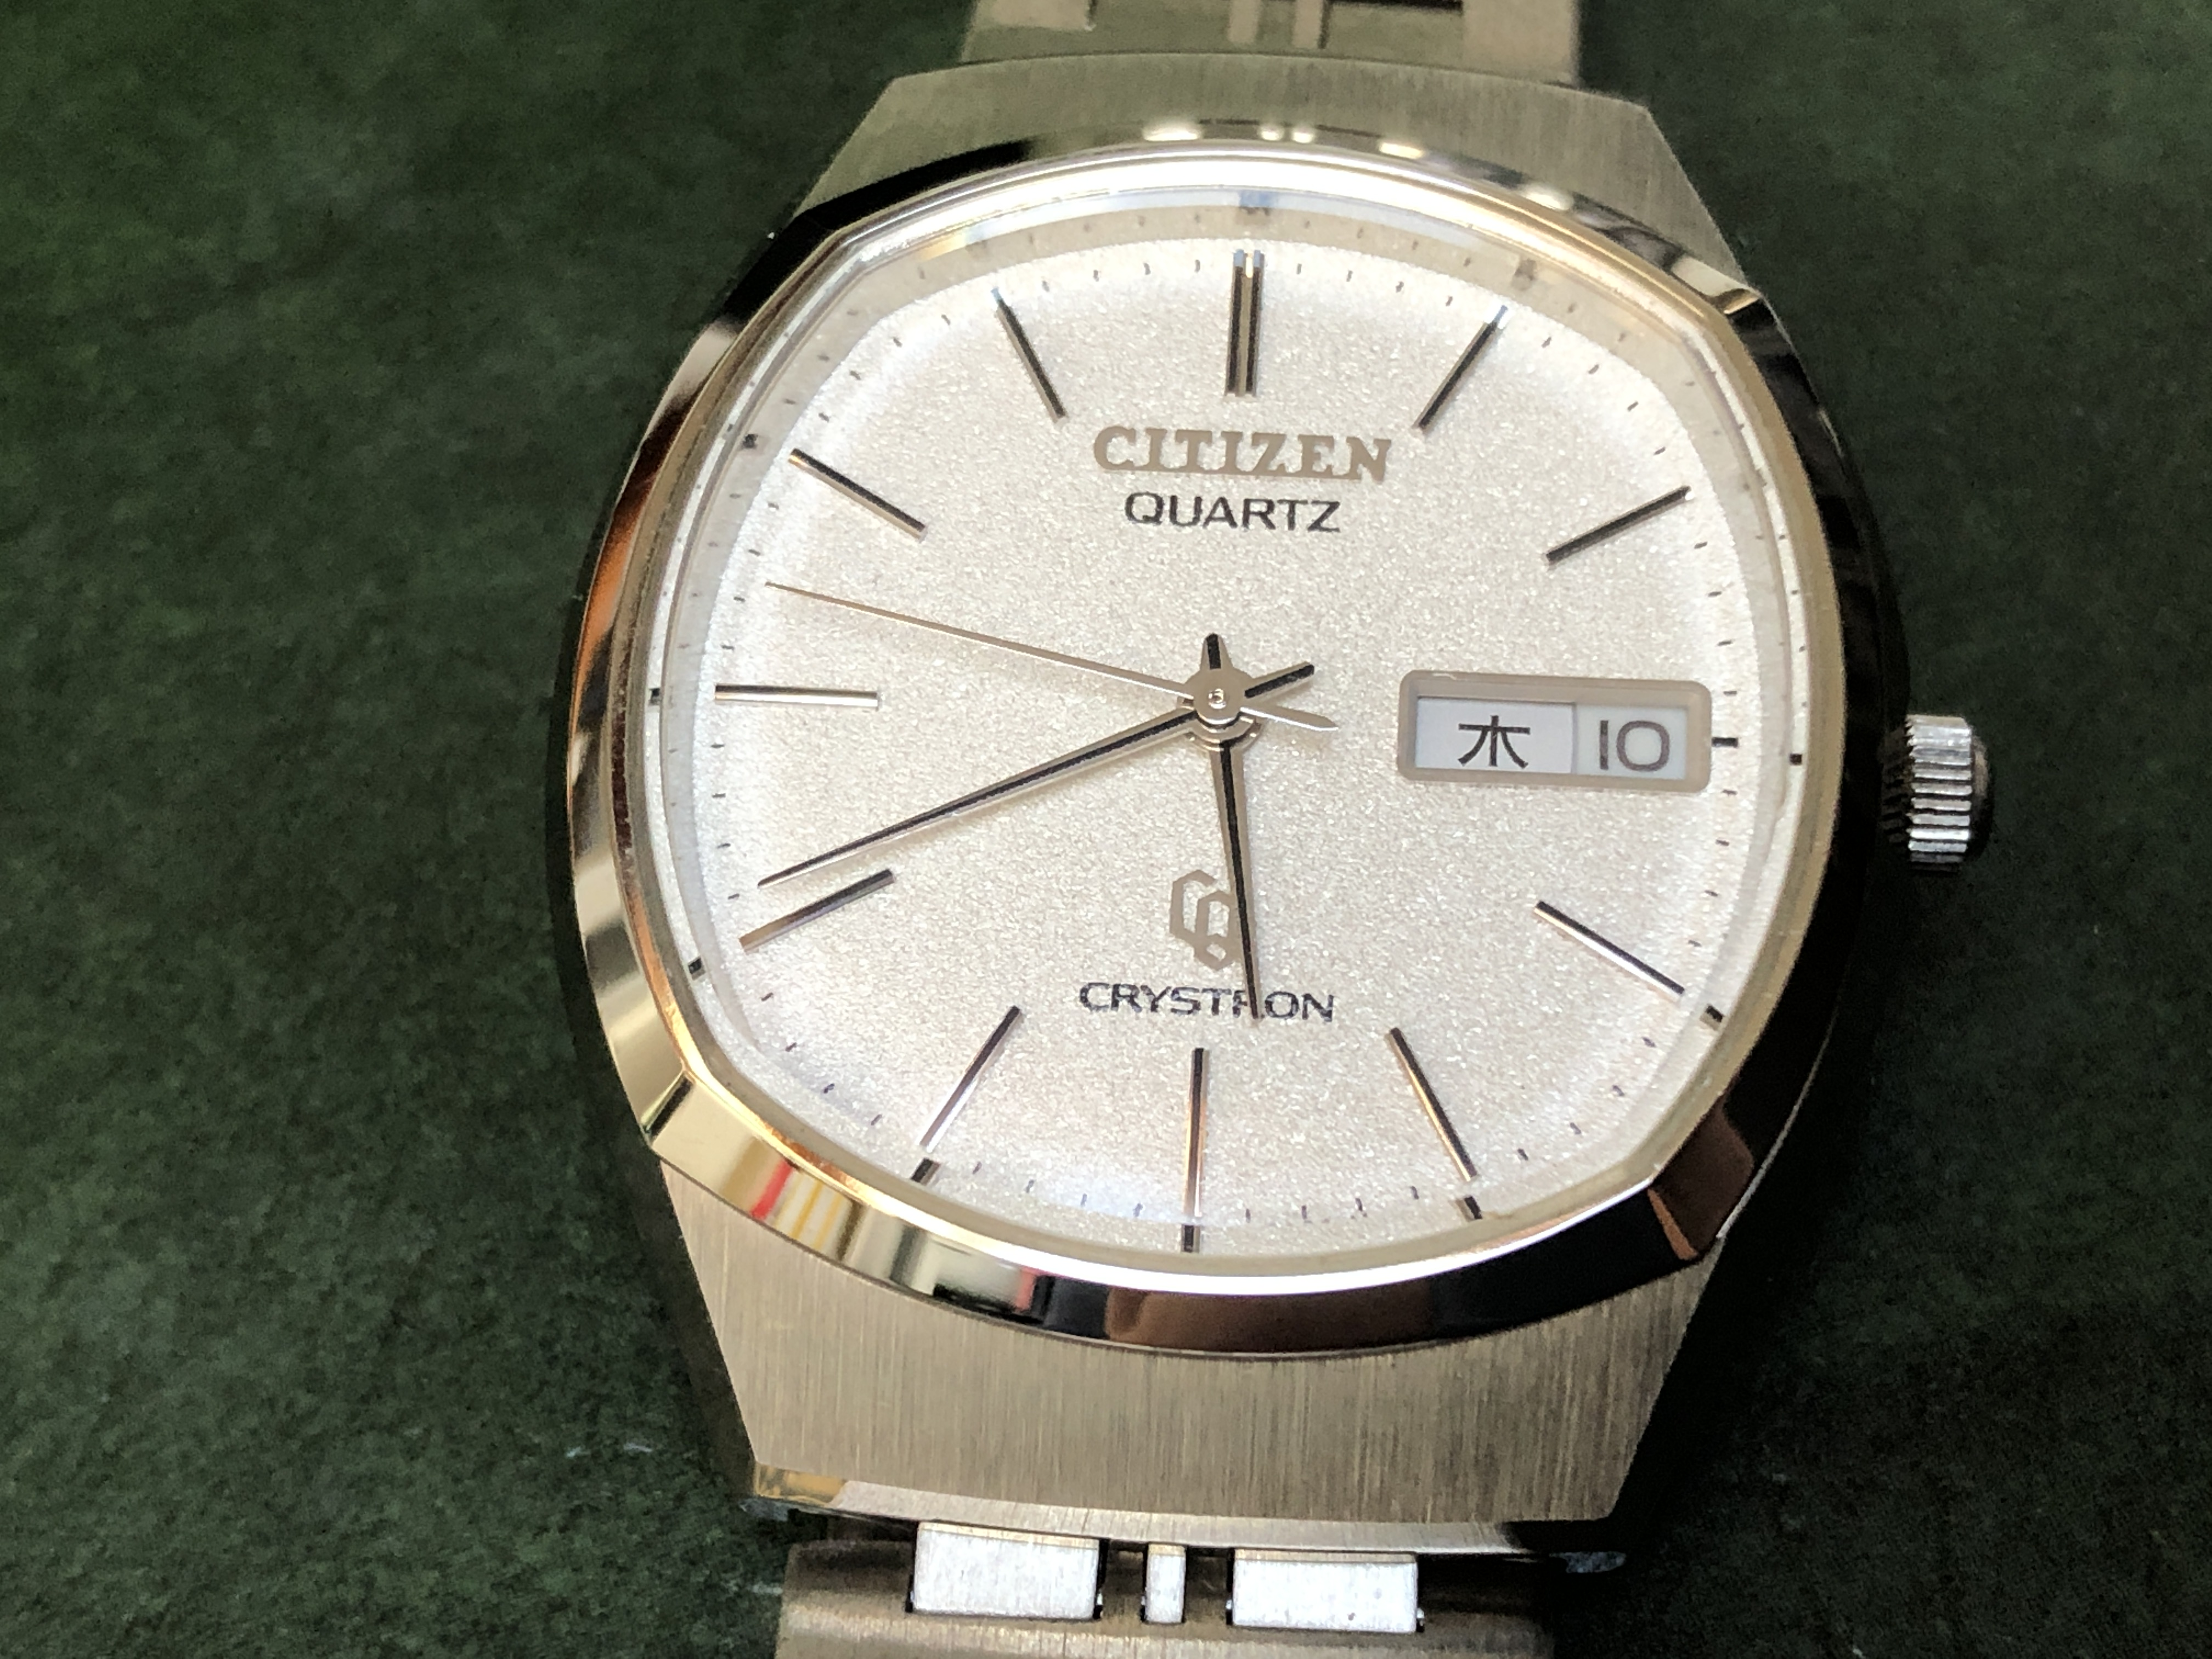 Citizen Crystron 4-7100- GN-5-U Diamond Dust (Sold)